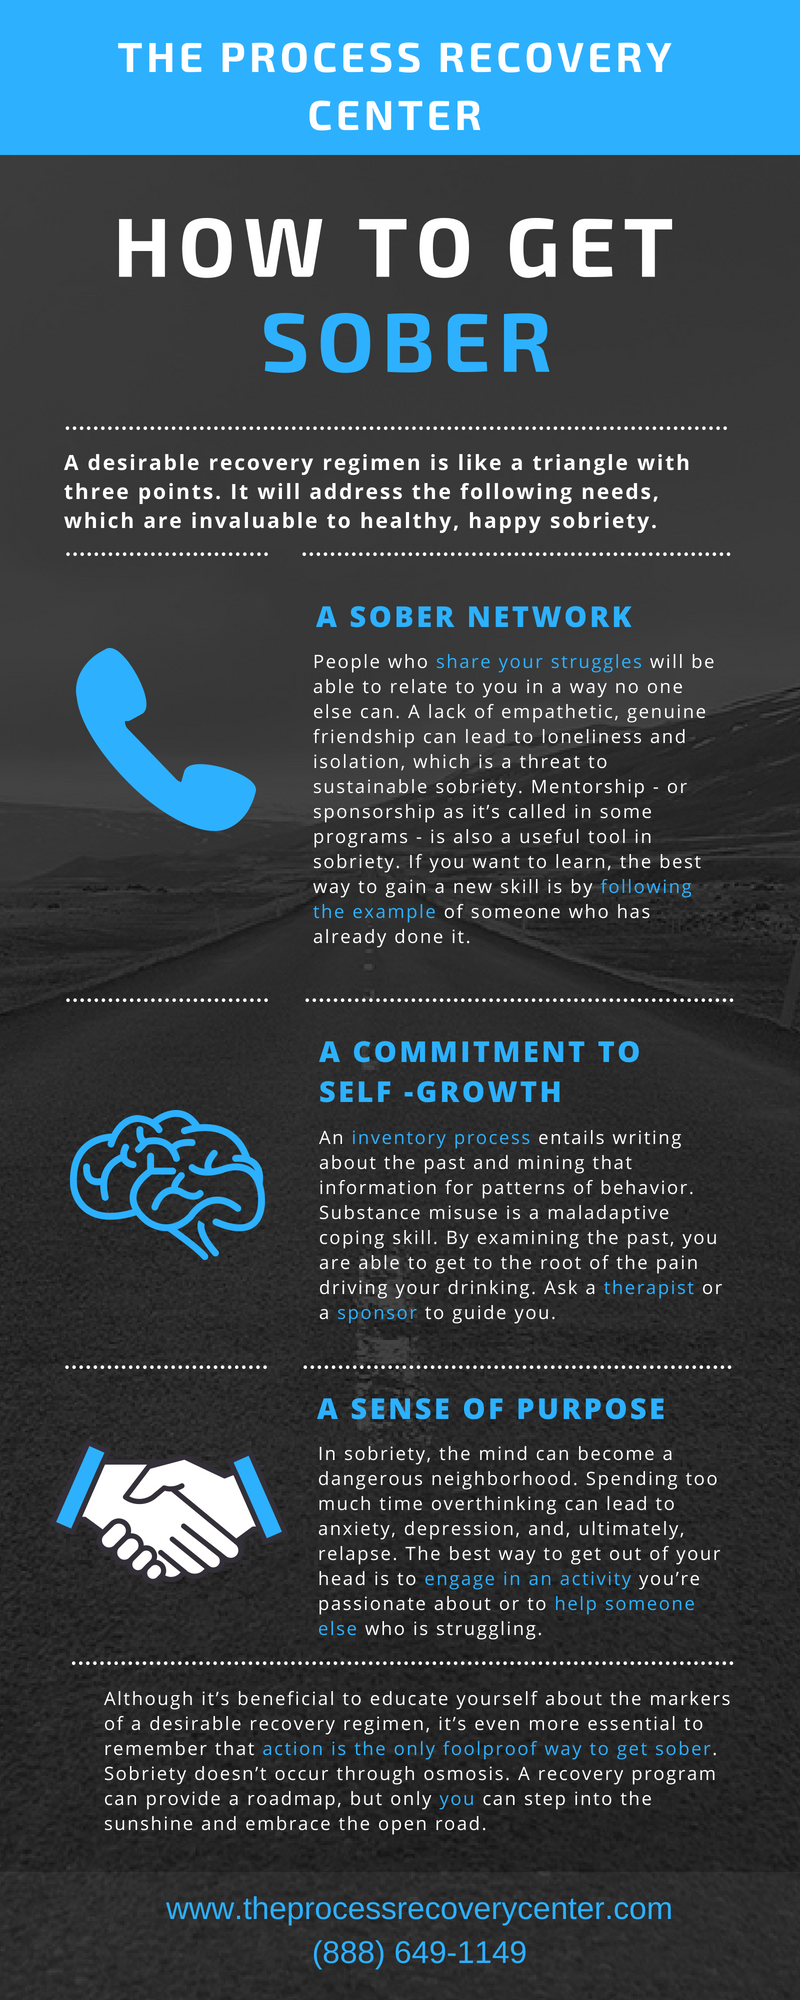 How to Get Sober Infographic